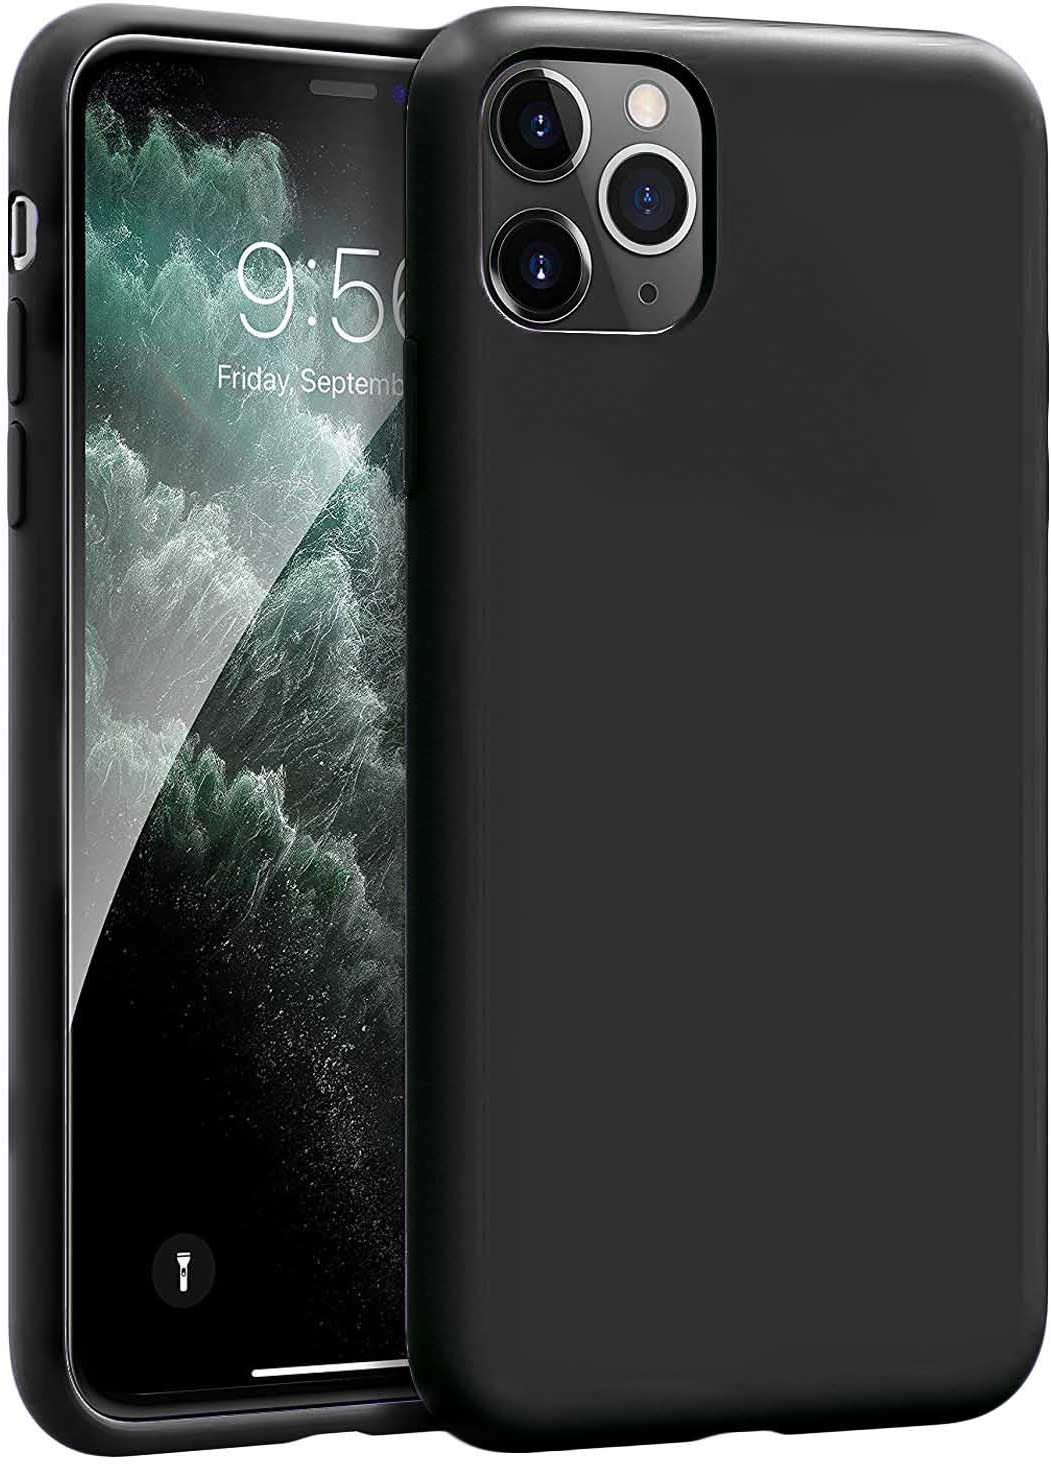 Compatible with iPhone 11 PRO 5.8inch(2019) Case Silicone Gel Rubber Shockproof Slim Shell with Soft Microfiber Cloth Lining Cushion Cover for iPhone 11 PRO 5.8inch(2019)-Black